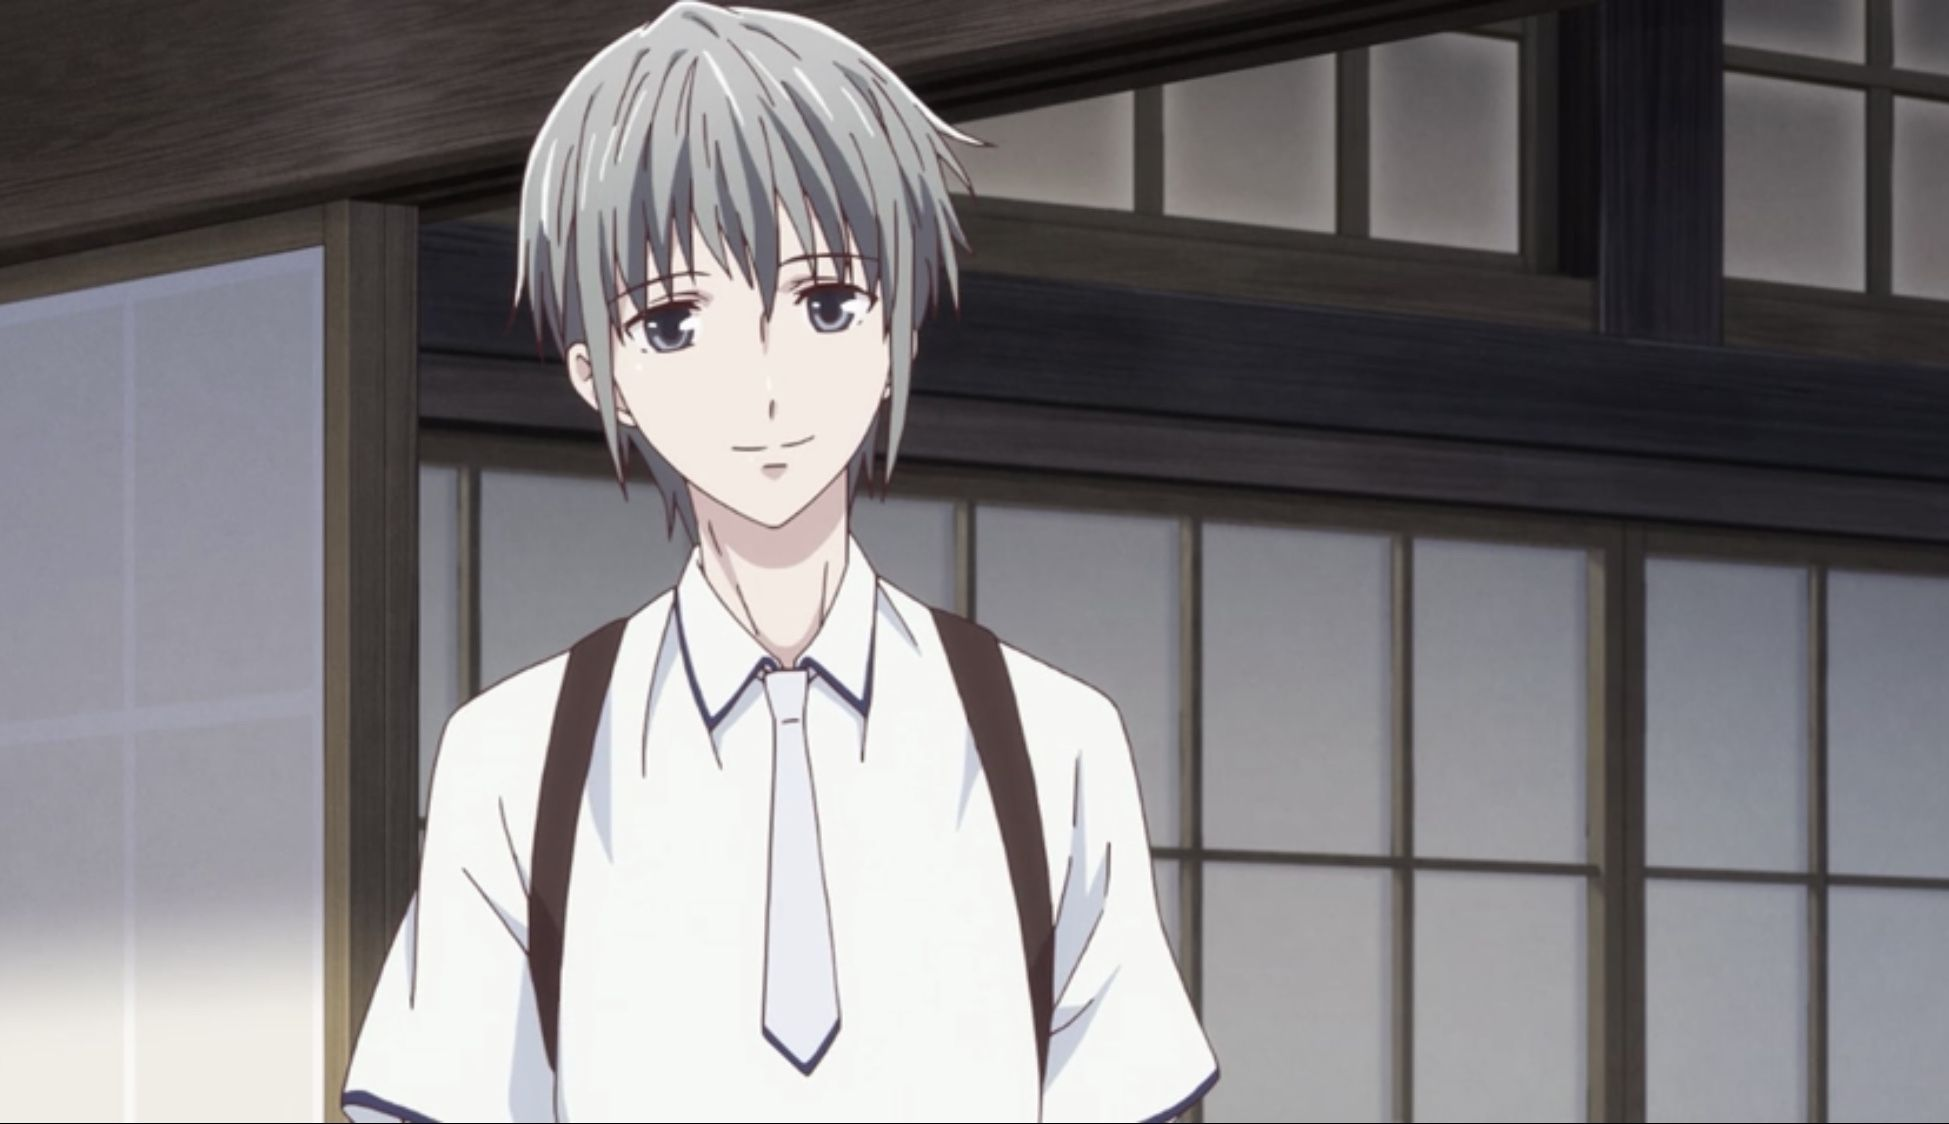 Pin by Carly Smith on Fruits basket Fruits basket anime